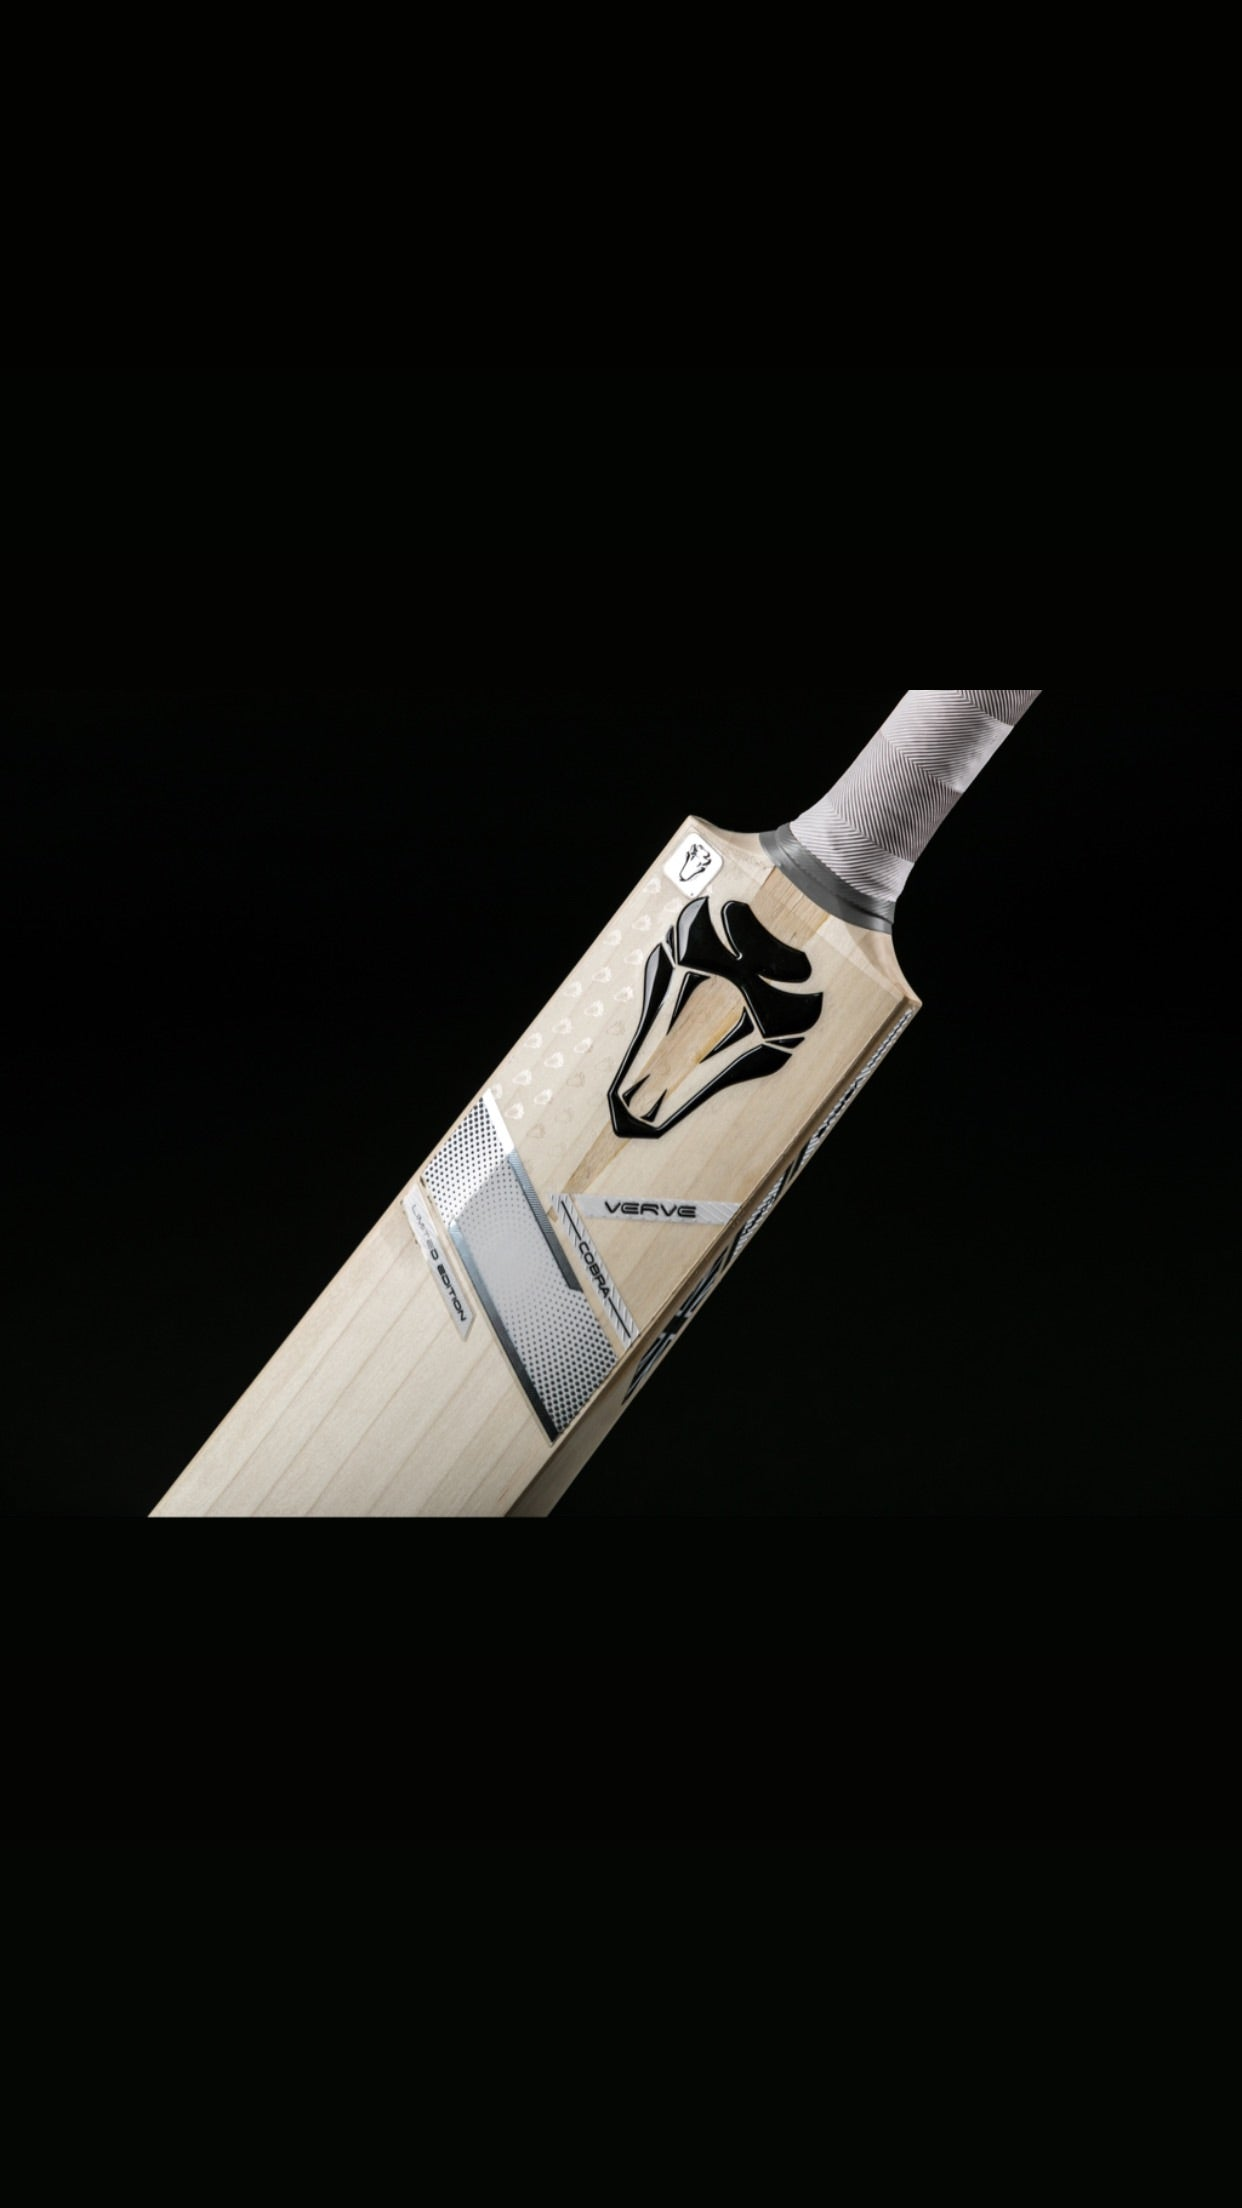 CUSTOM MADE BAT FOR ANDY BEASLEY